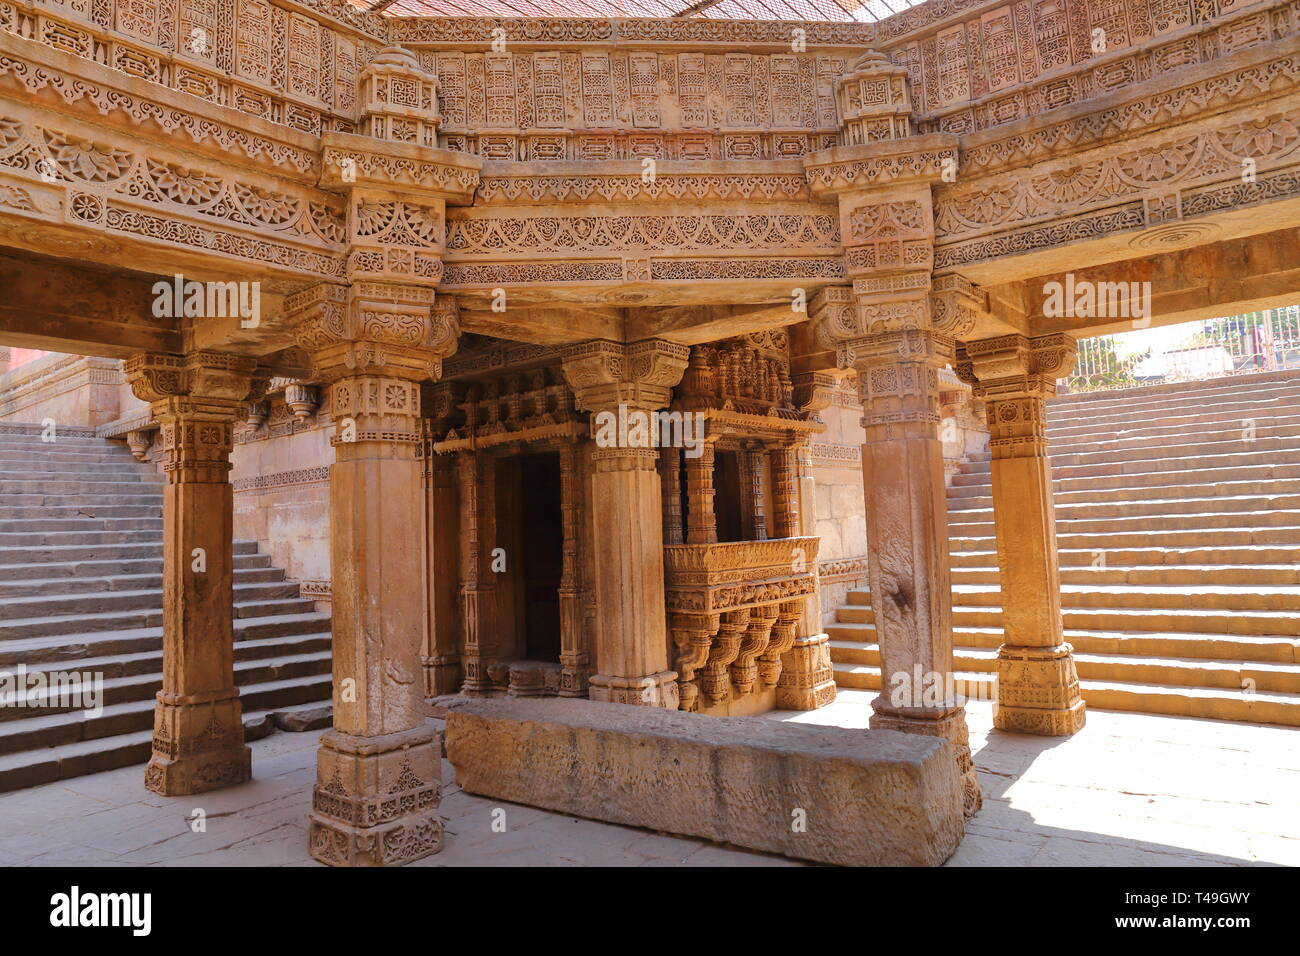 Adalaj Stepwell is a Hindu building in the village of Adalaj near Ahmedabad in the Indian state of Gujarat. Stock Photo